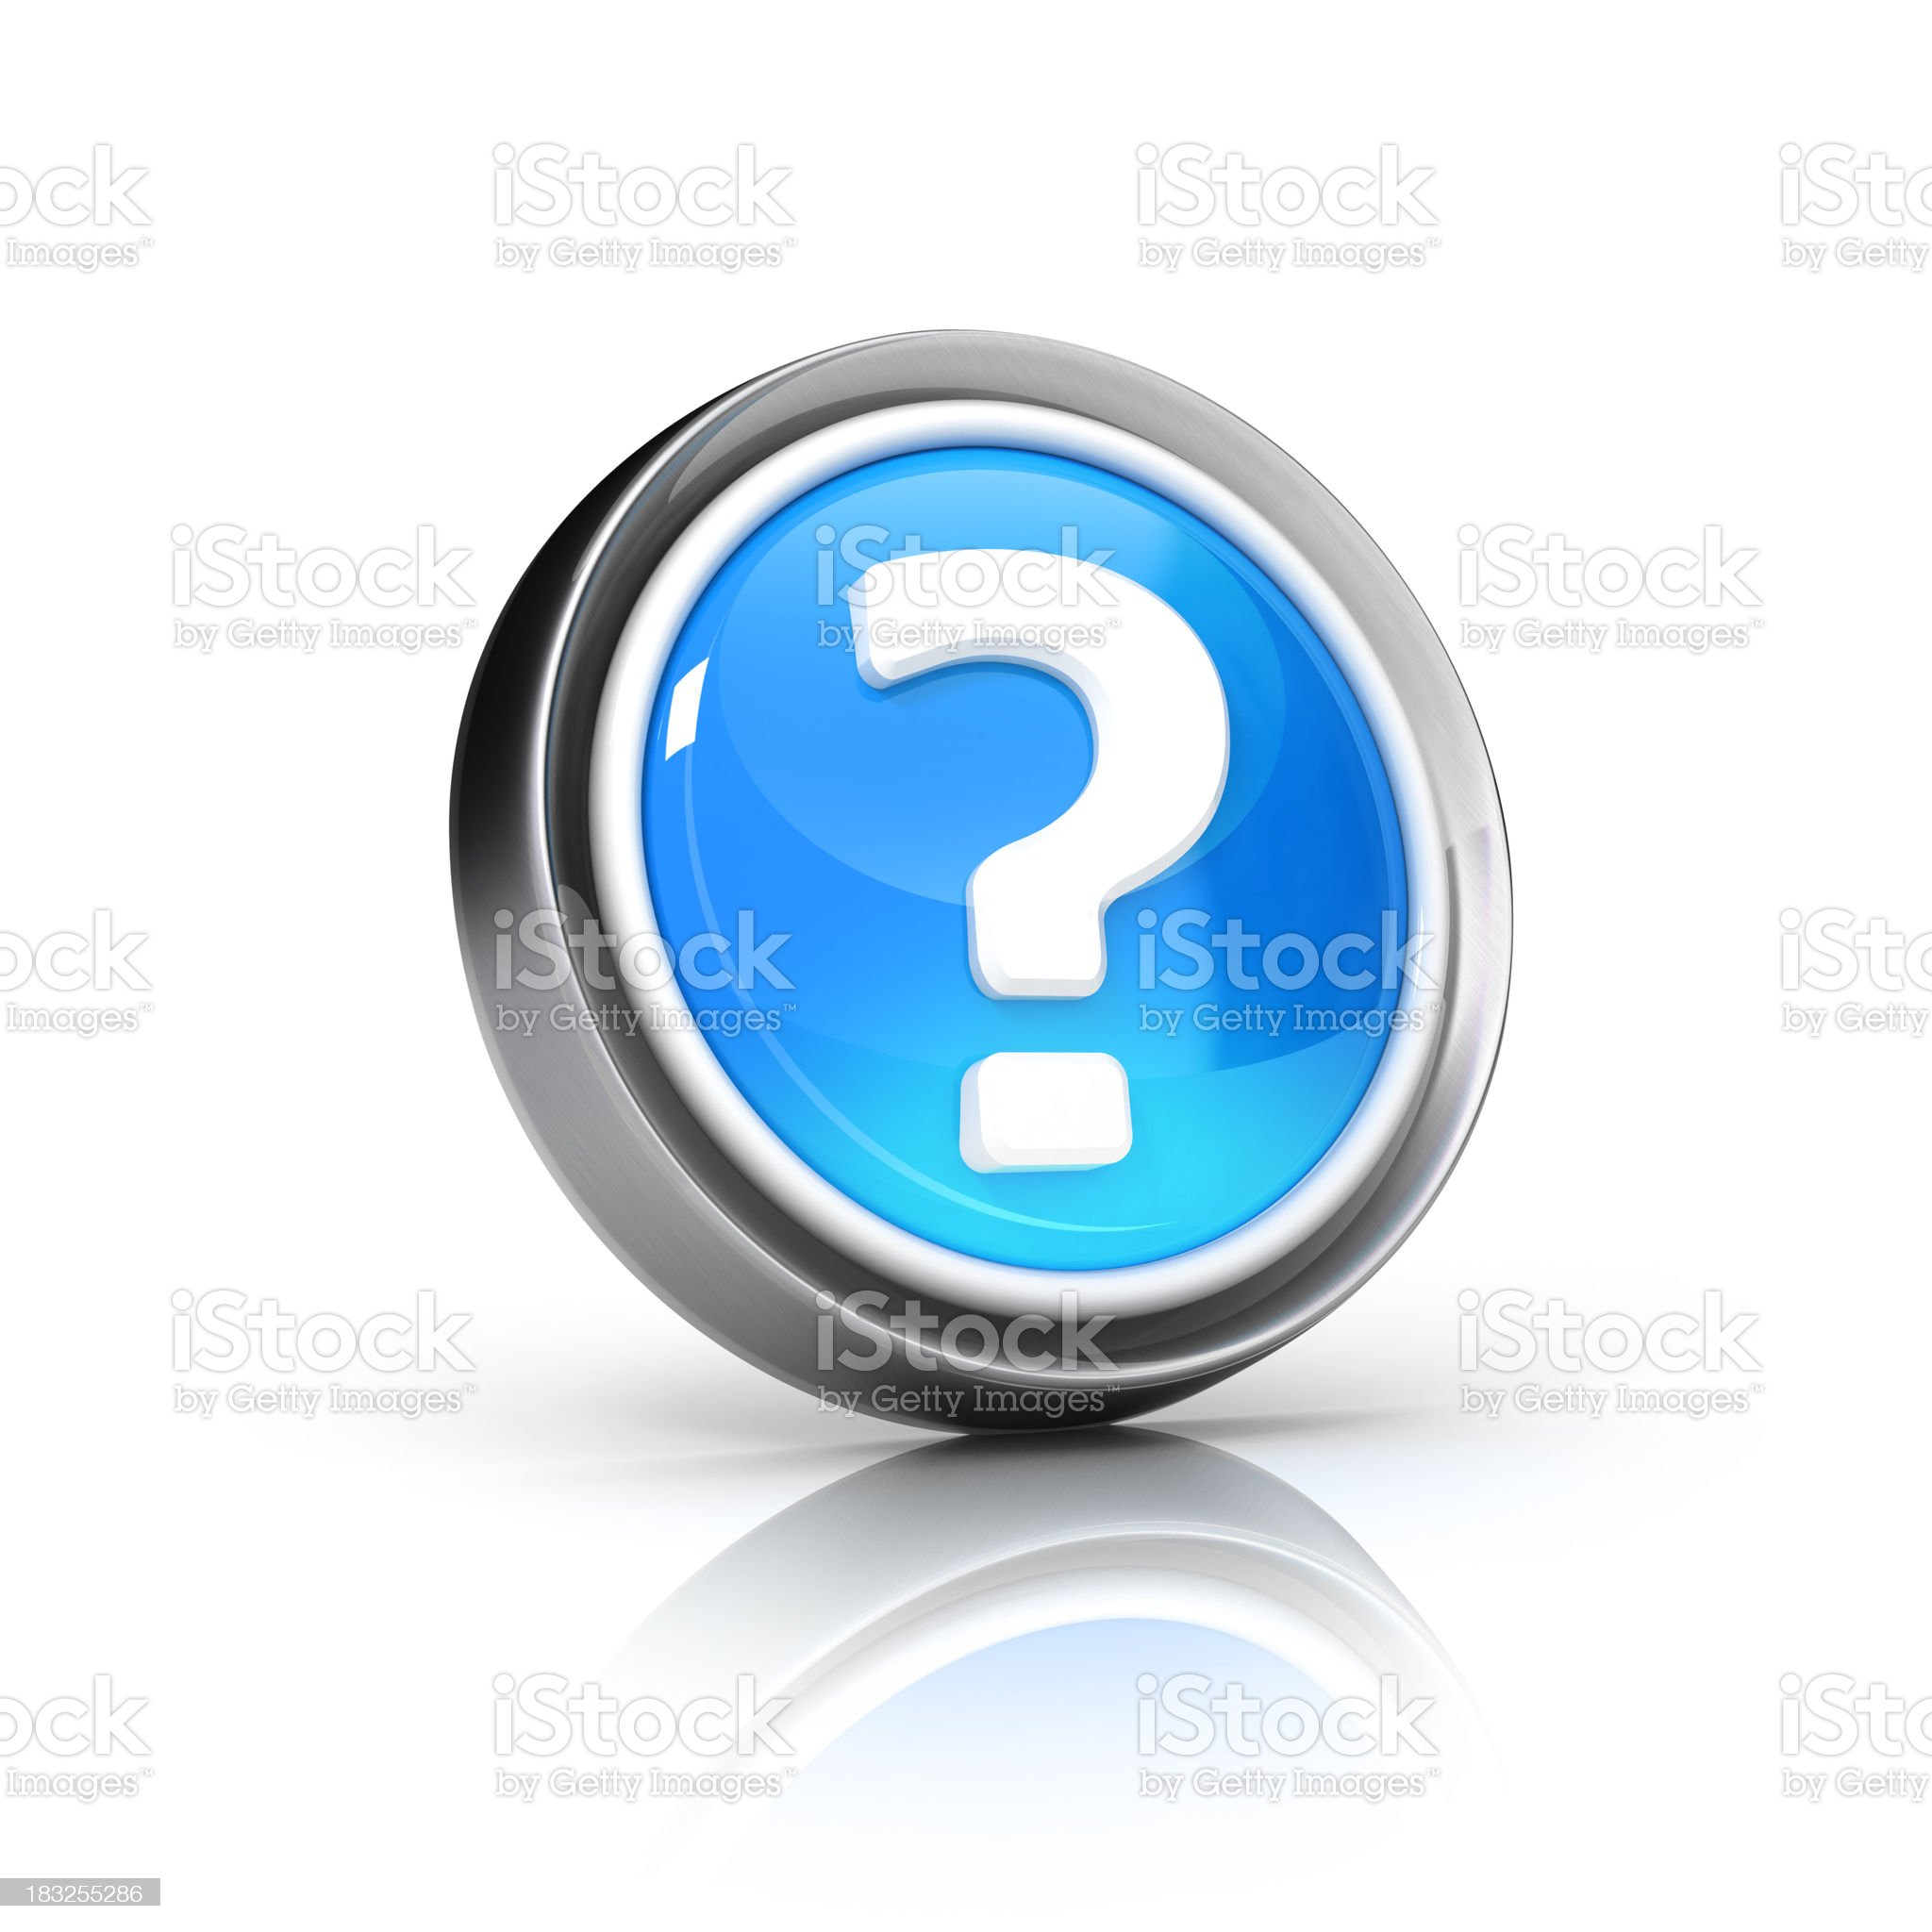 question or help icon royalty-free stock photo